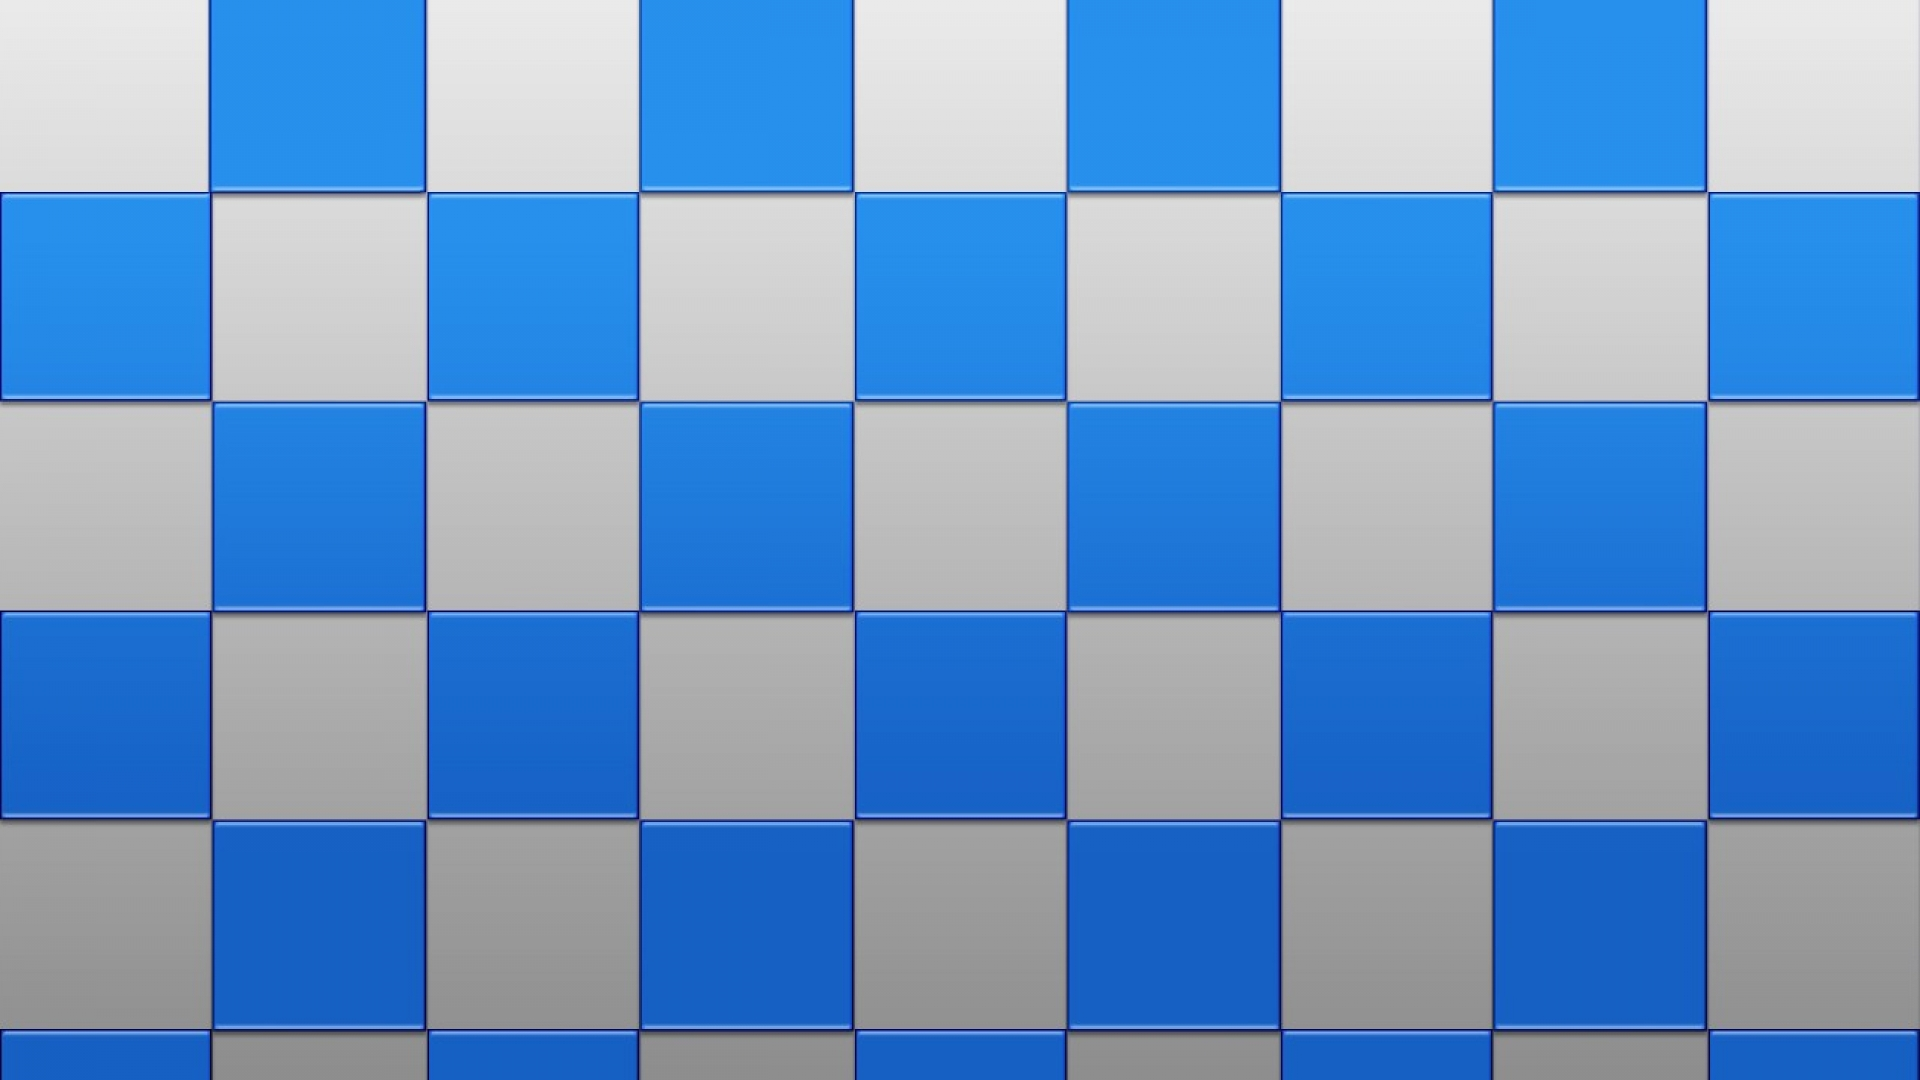 Blue Square Wallpaper